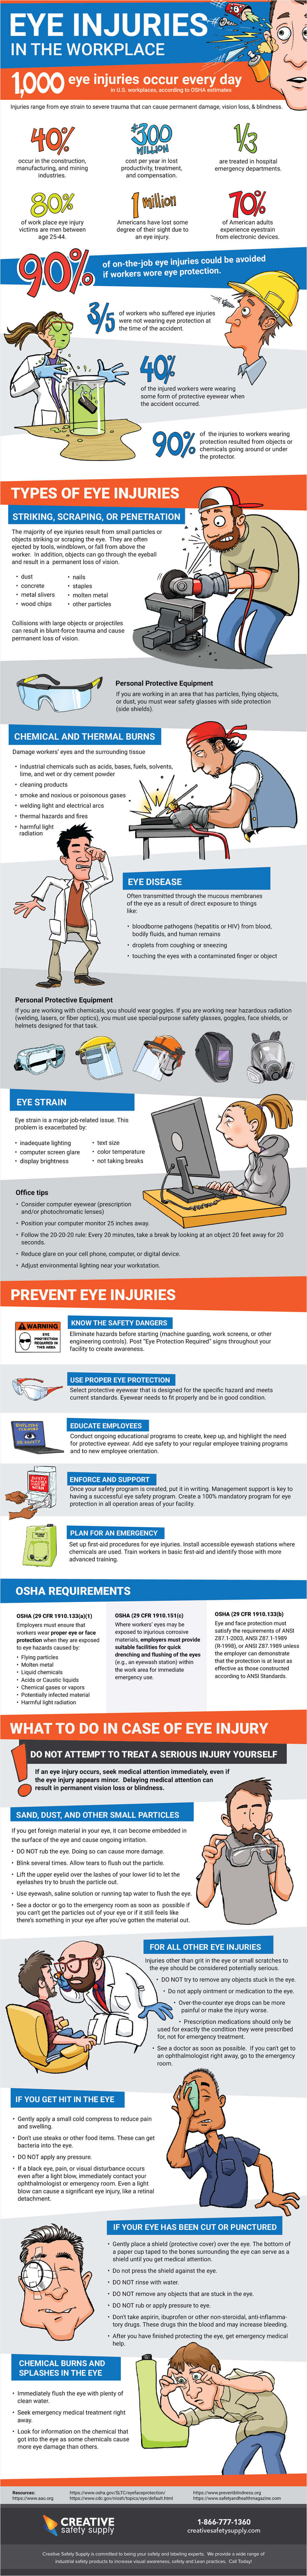 eye-injuries-workplace-infographic-plaza